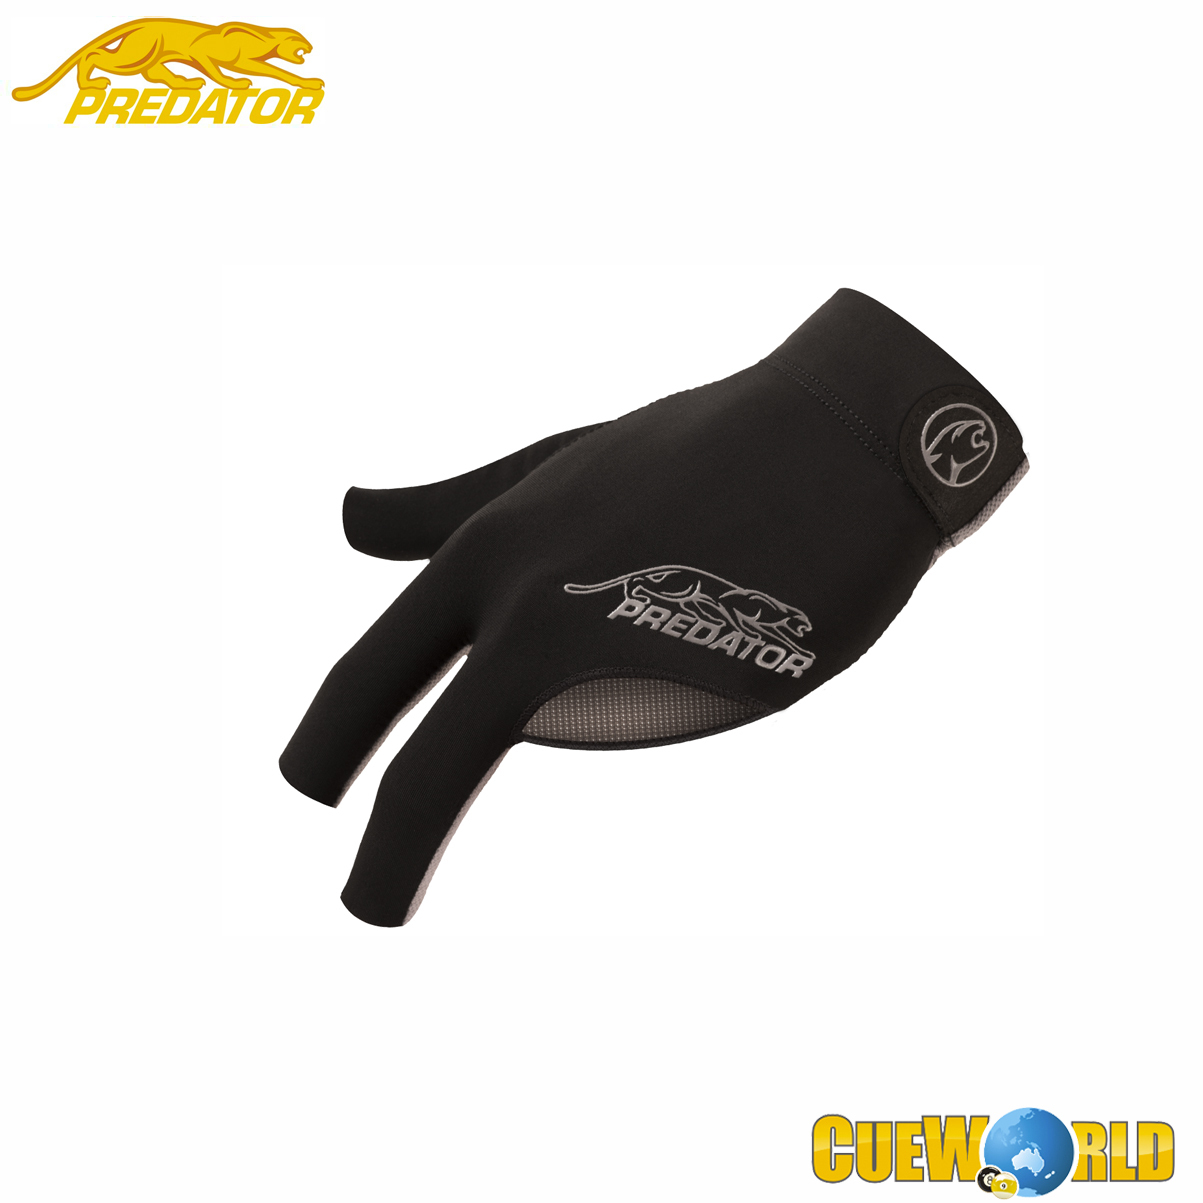 PREDATOR SECOND SKIN GLOVE GREY L-XL